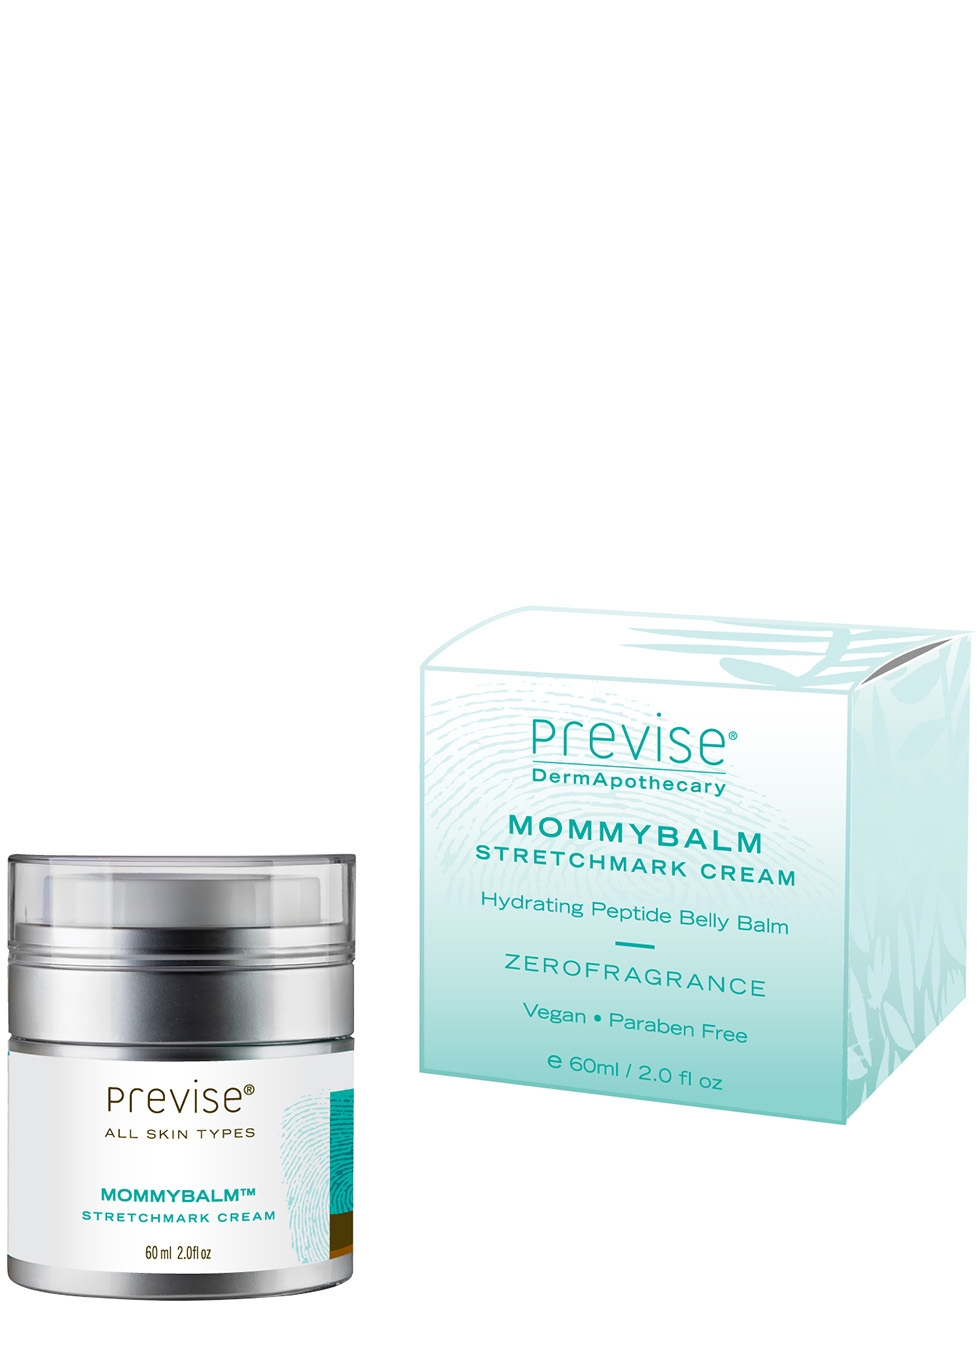 Previse MommyBalm Stretch Mark Cream, £71